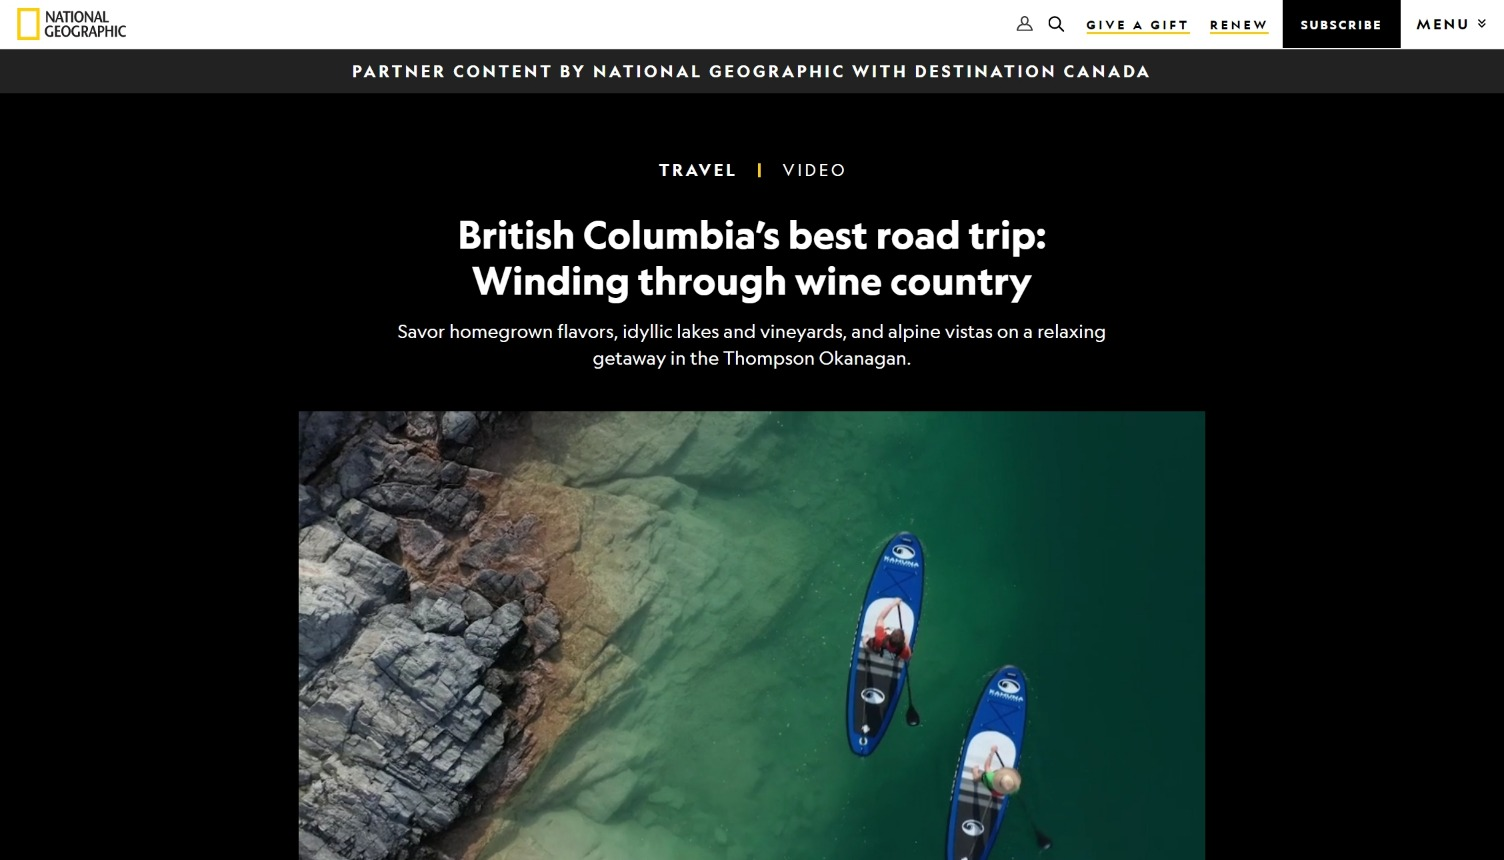 National Geographic and Destination Canada - Winding through wine country